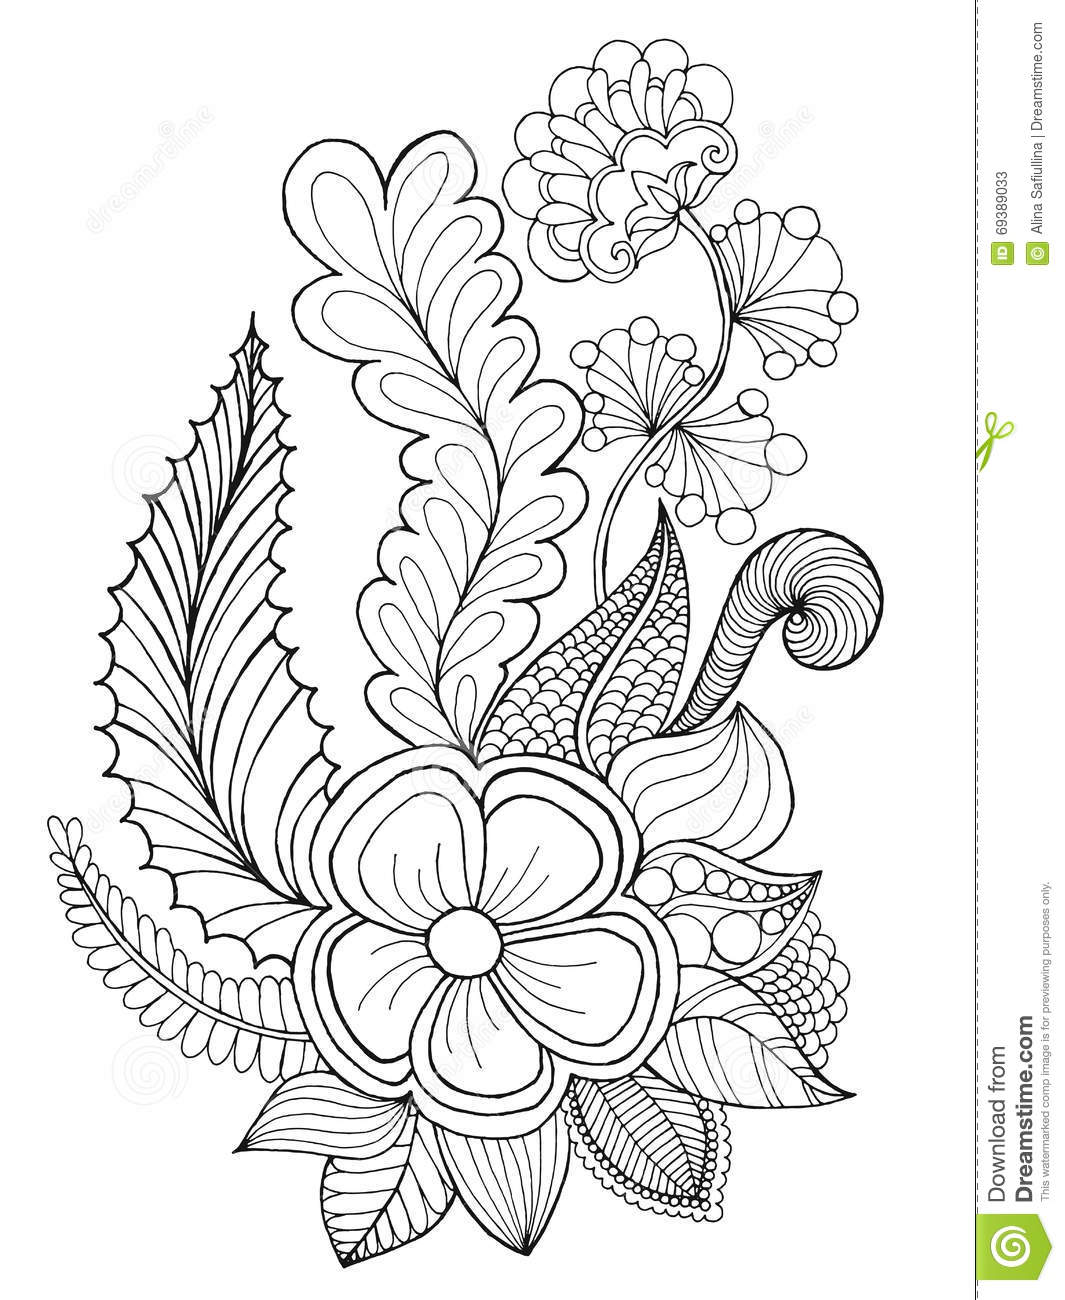 Fantasy Flowers Coloring Page Stock Vector Image 69389033